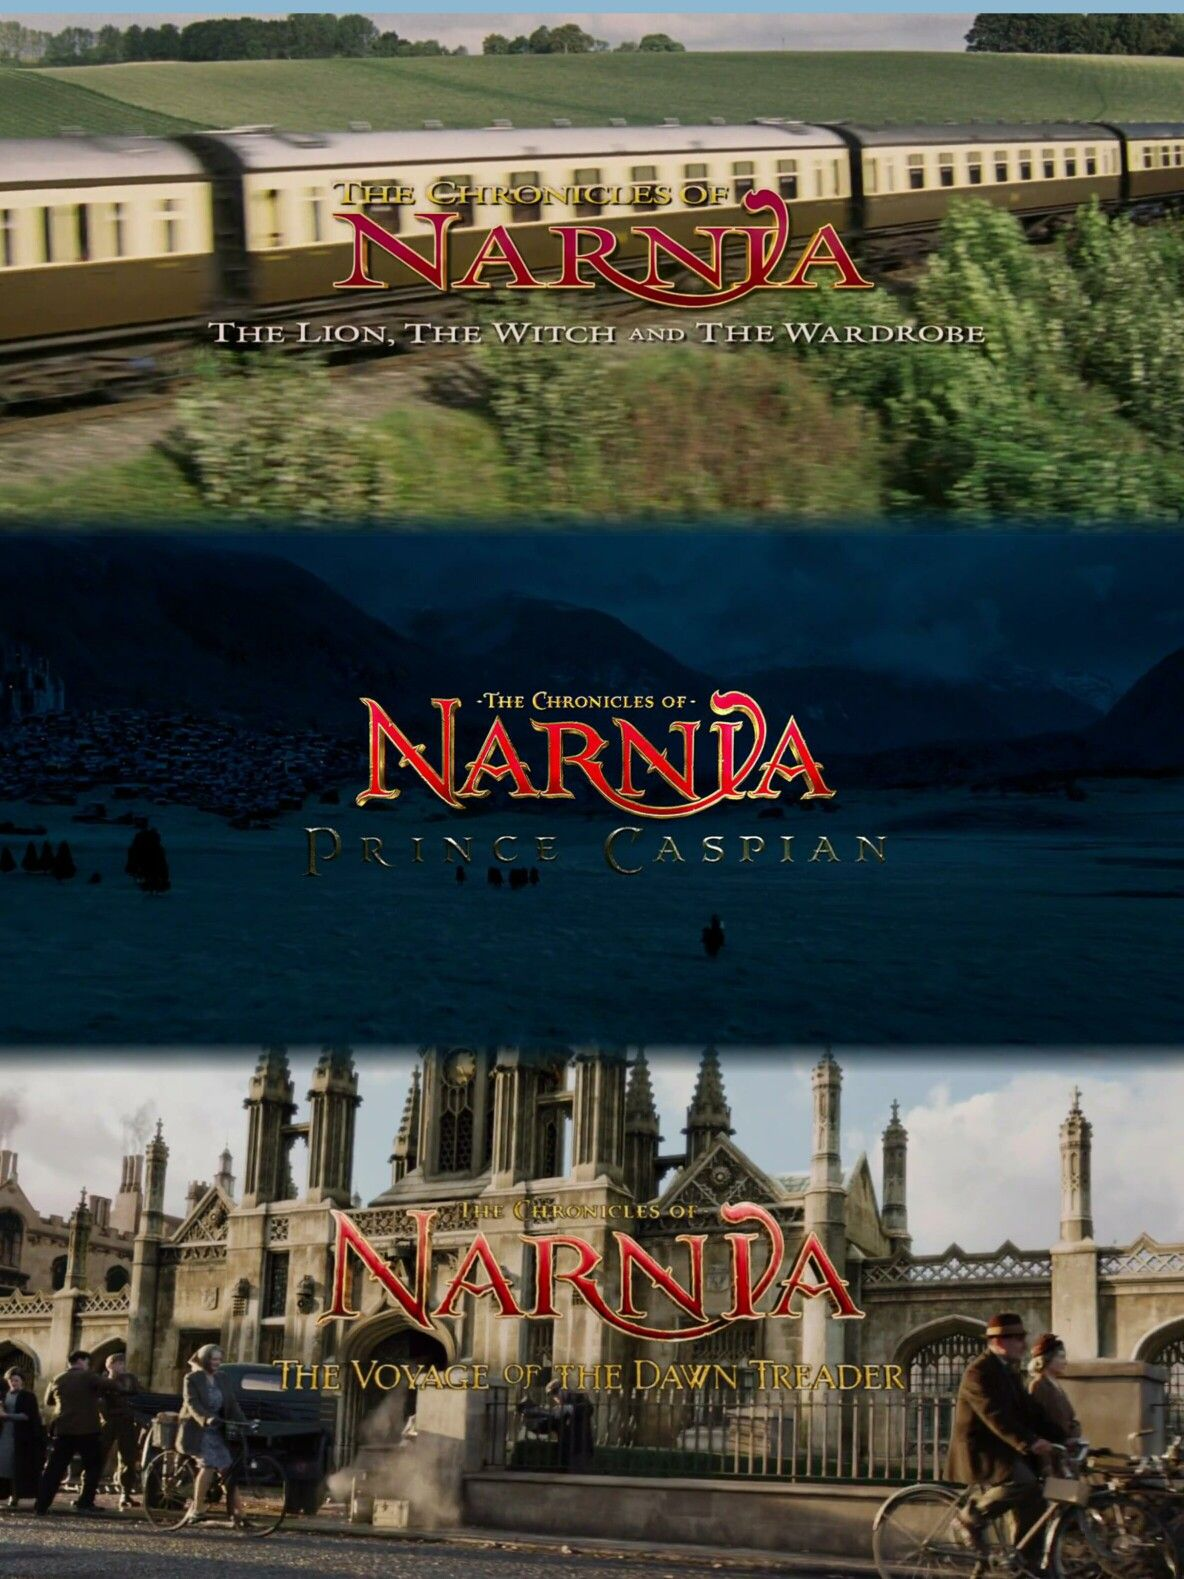 The Chronicles Of Narnia Opening Title Screen Chronicles Of Narnia Narnia Movies Narnia